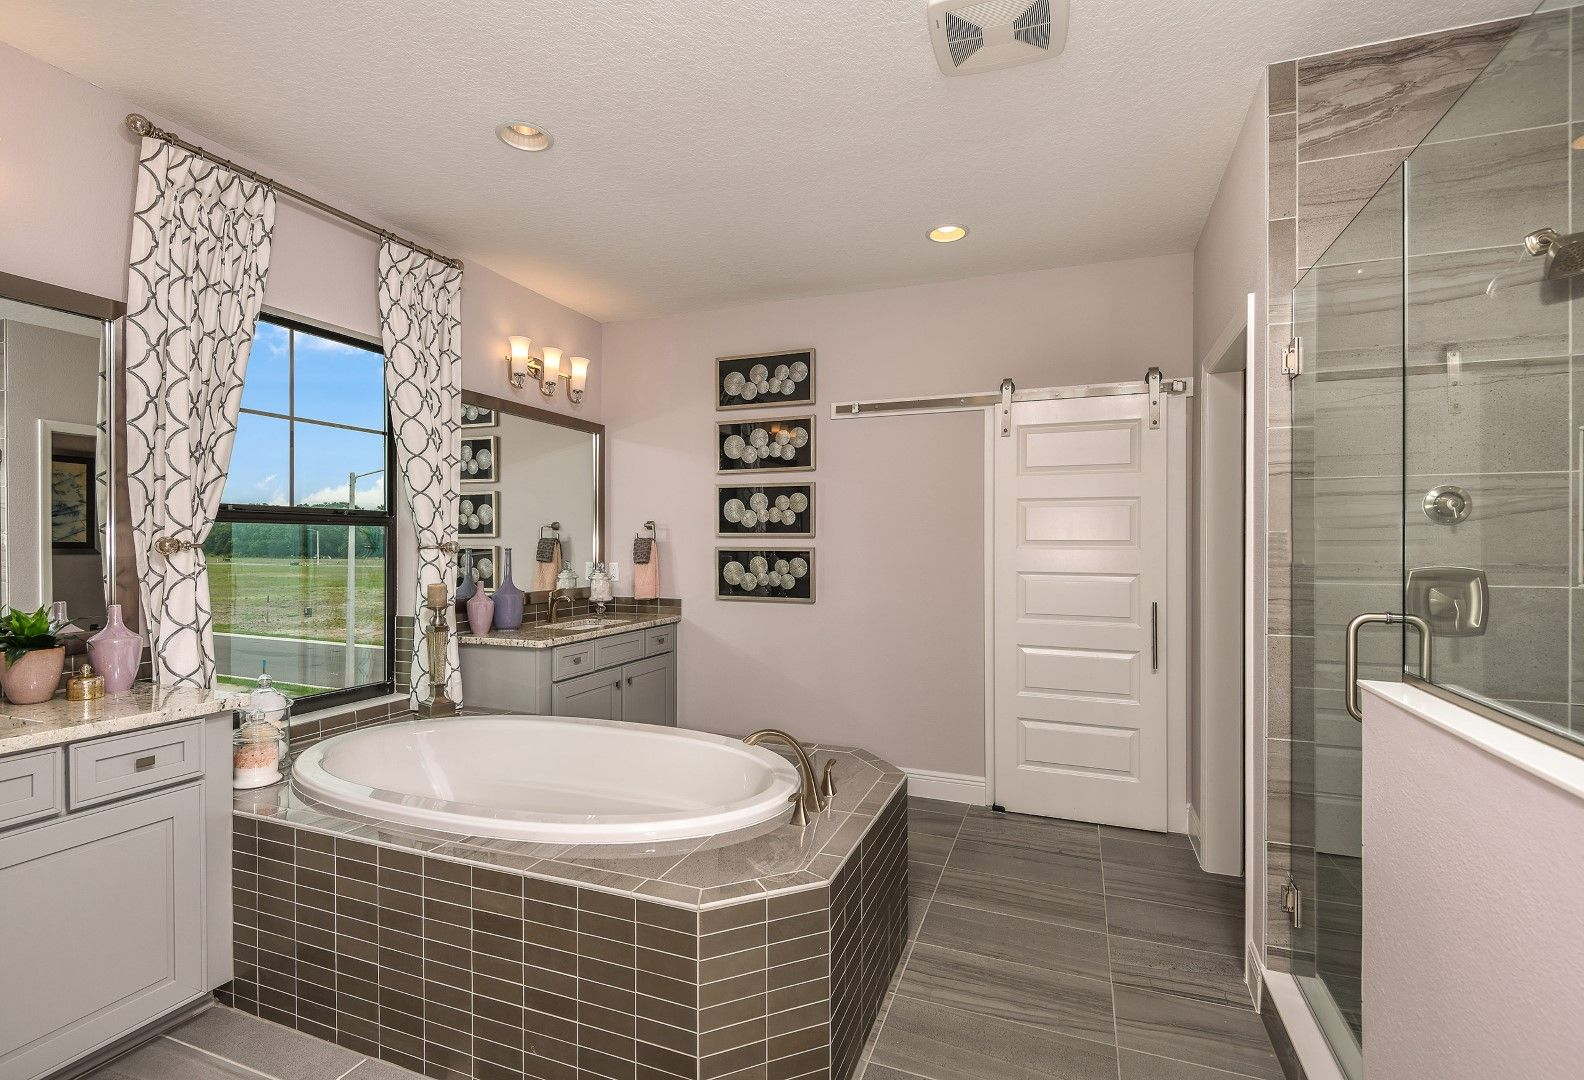 Bathroom featured in the Madeira III By Homes by WestBay in Tampa-St. Petersburg, FL